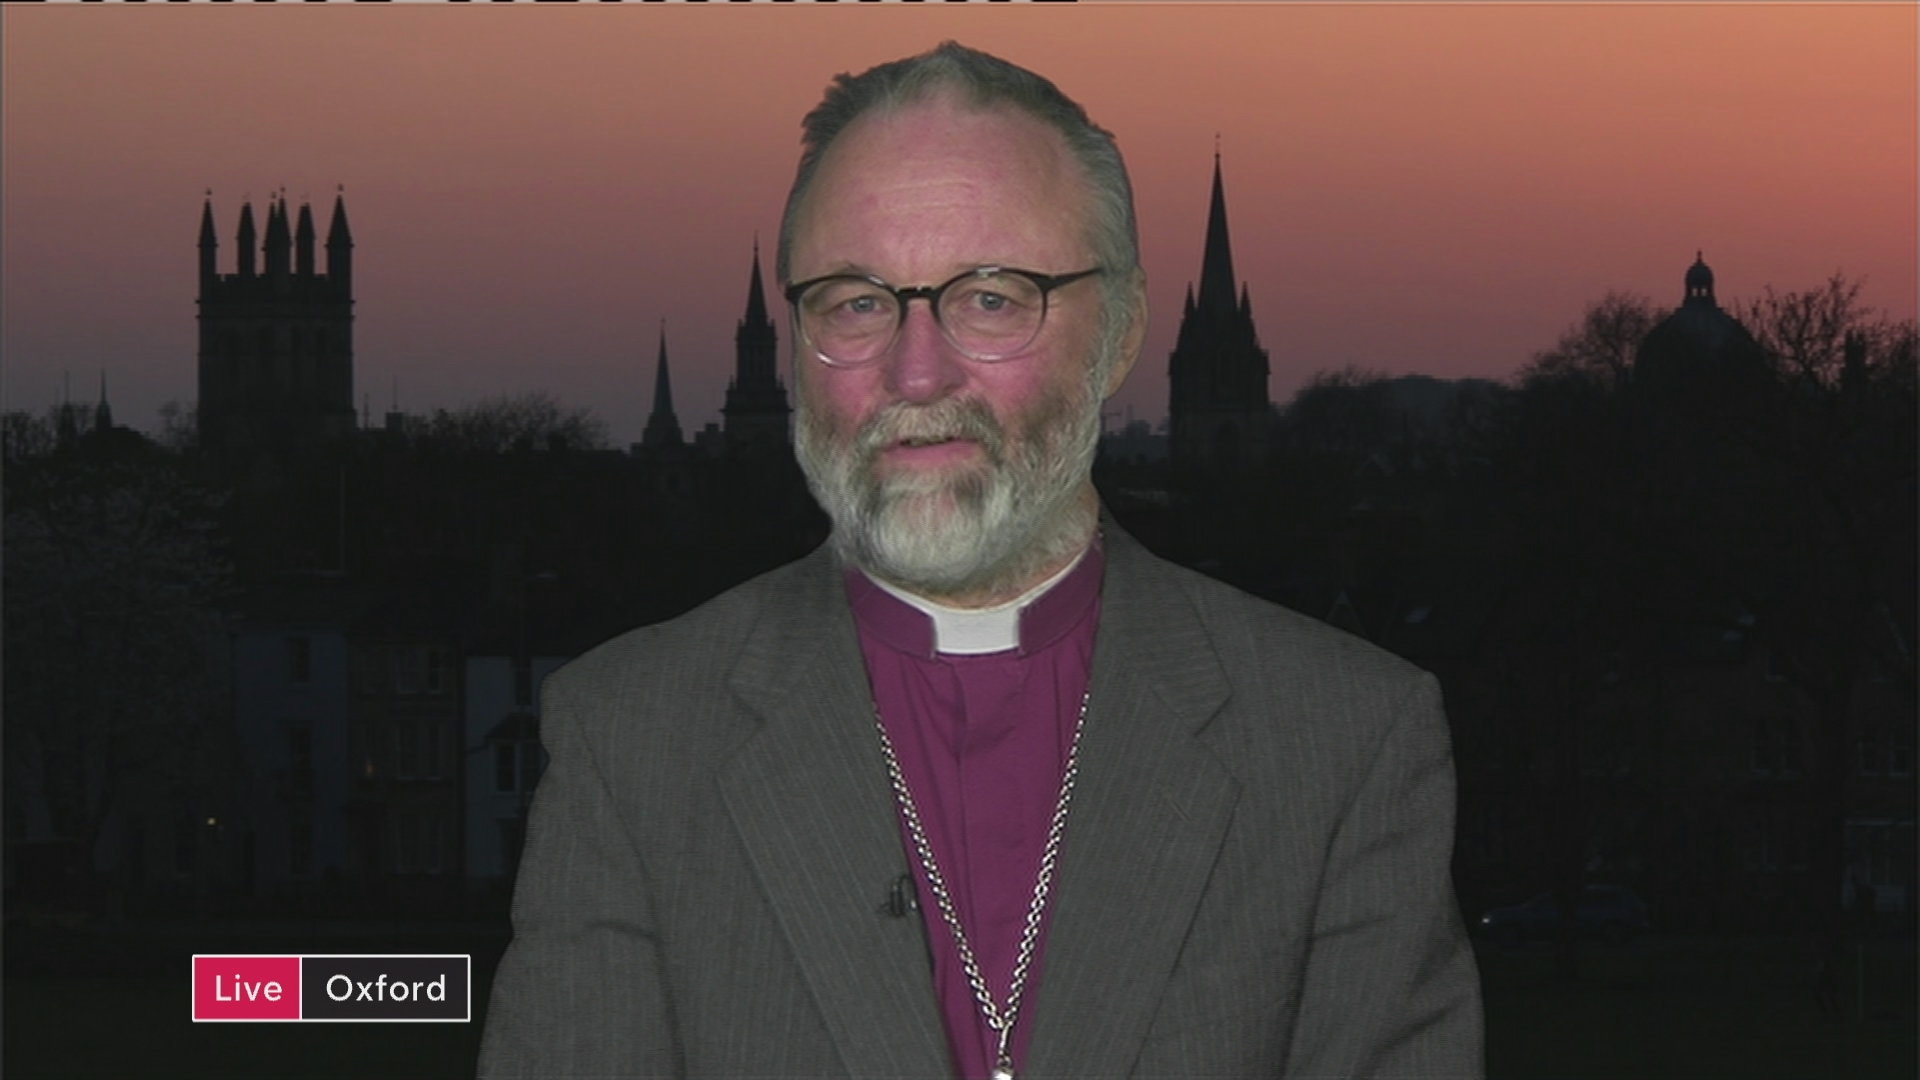 4th February 2017 – Accusing the Archbishop of Lying?